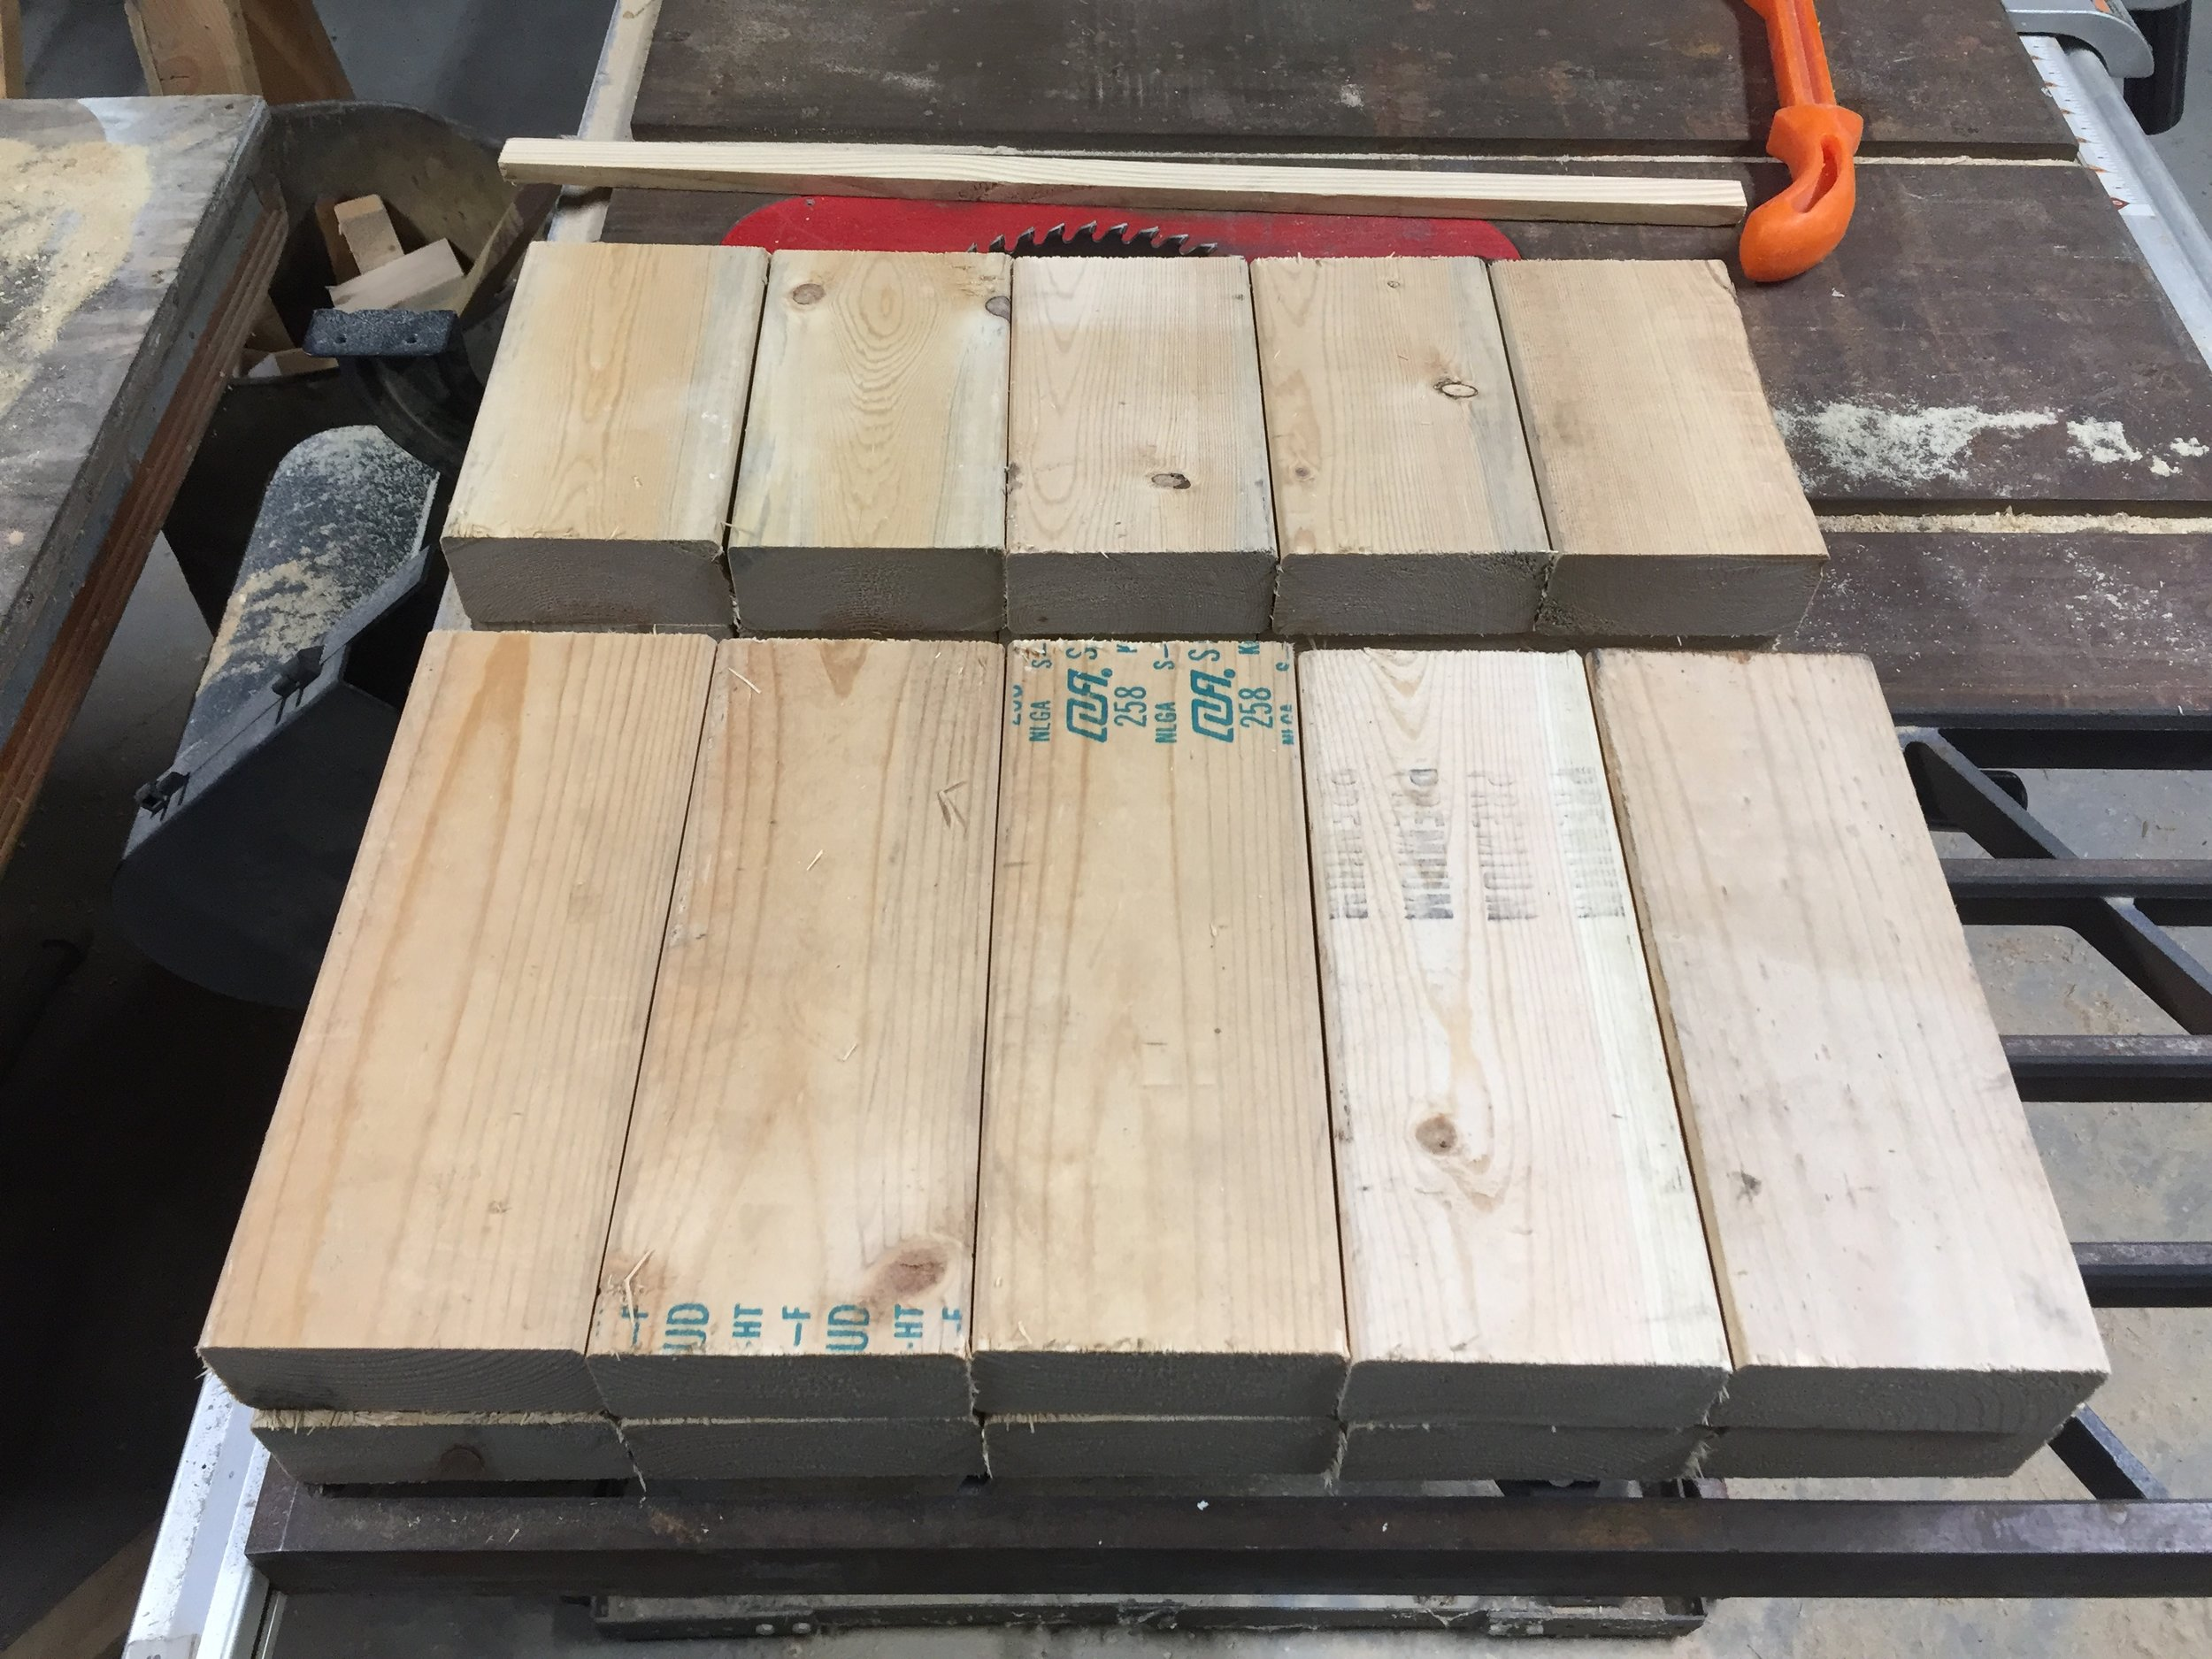 Frame sides from scrap 2x4 lumber.